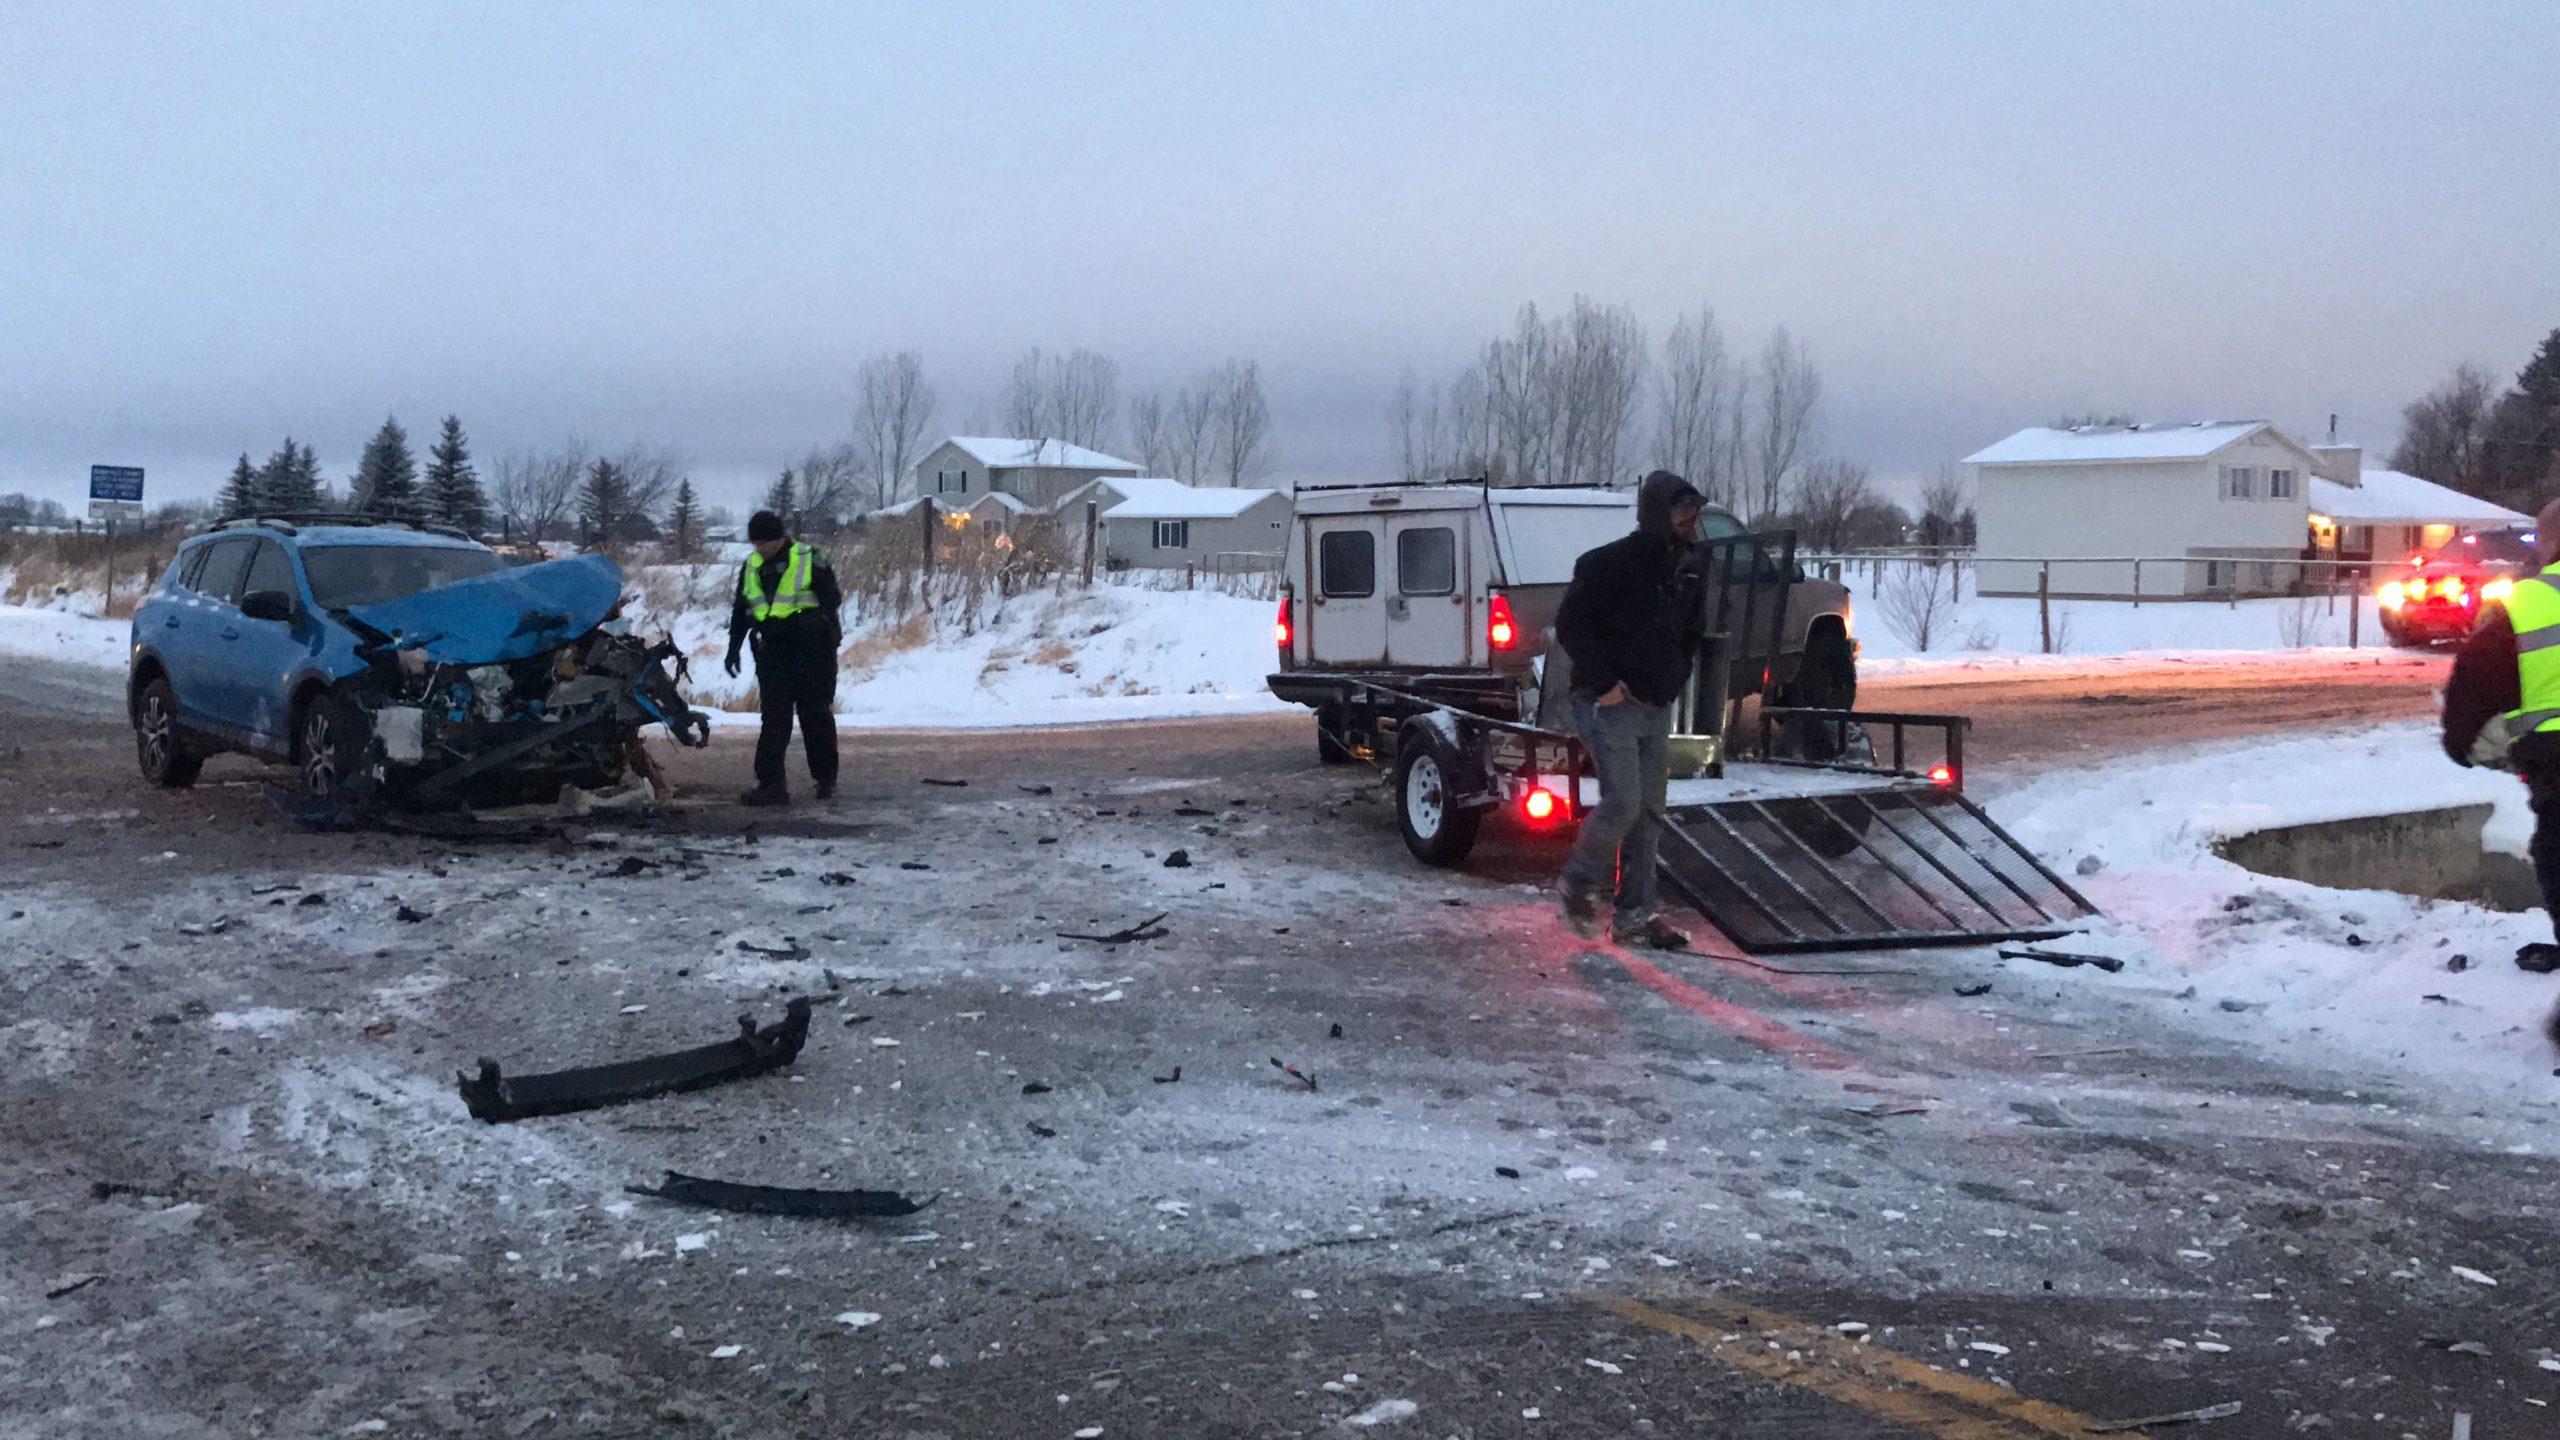 Accident at 49th South Ammon Road in Ammon Sunday, Jan. 5, 2020